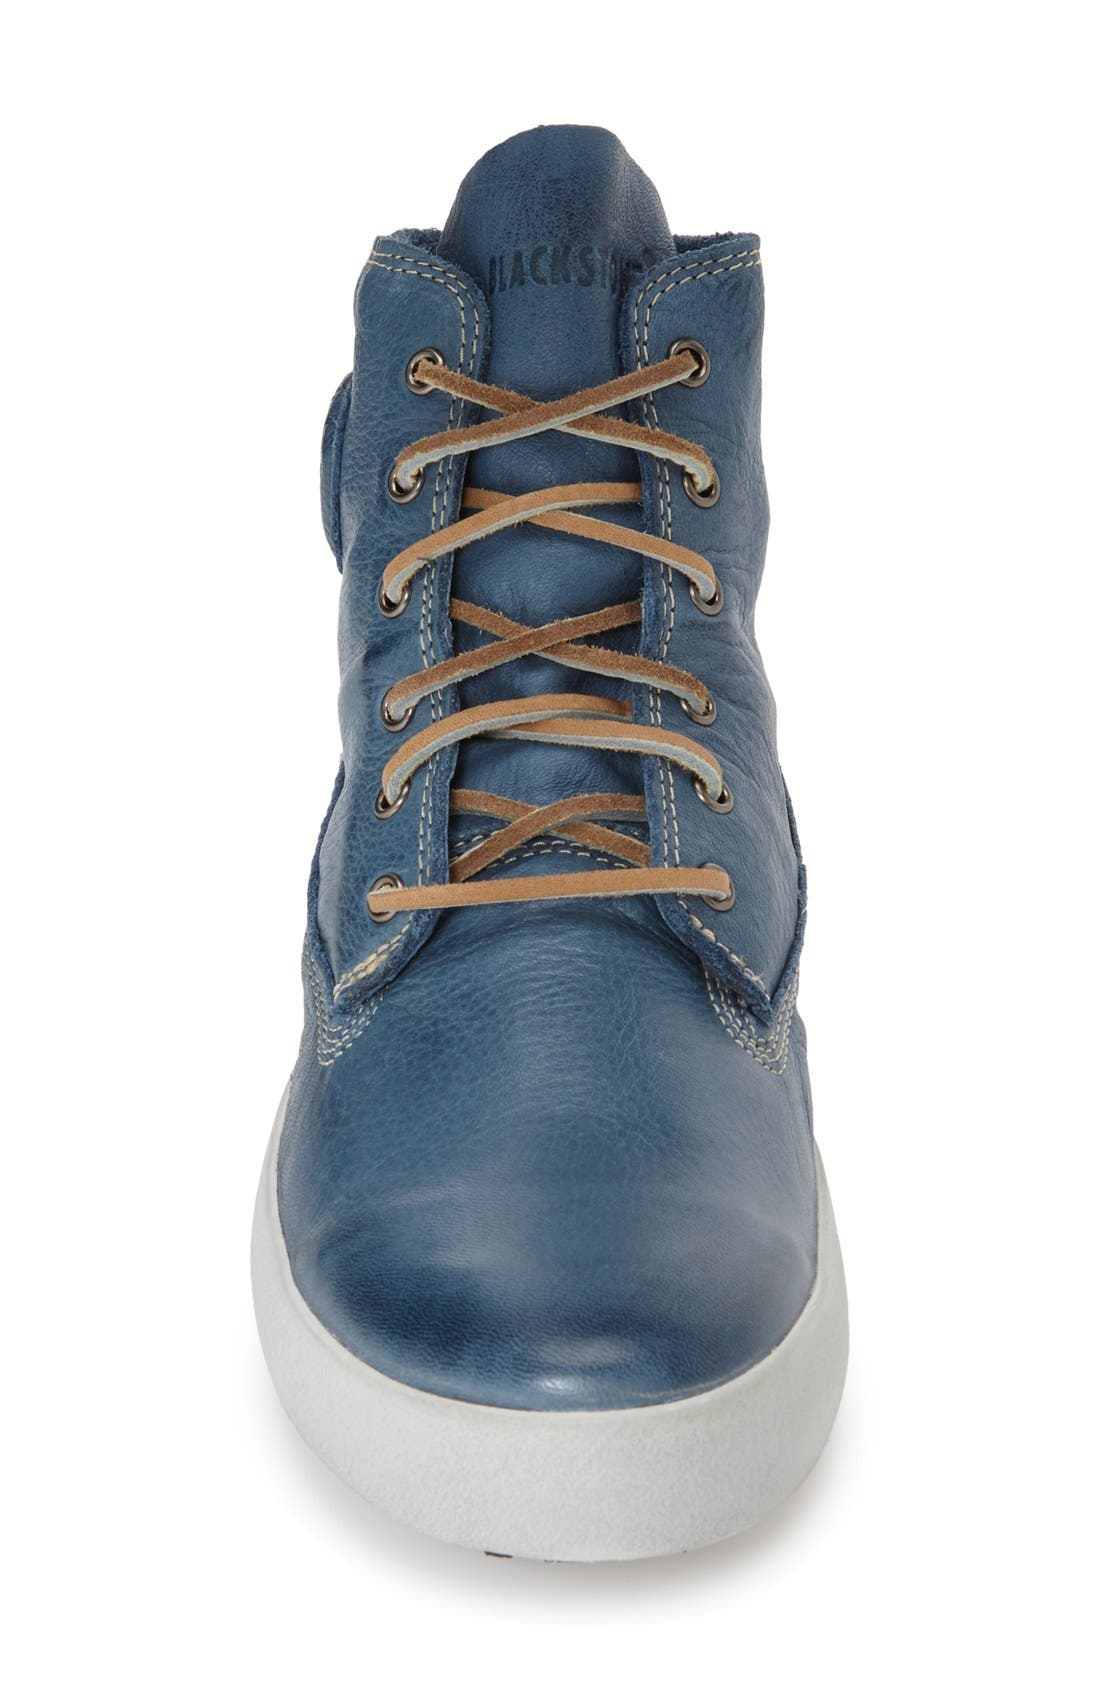 'JM04' Sneaker,                             Alternate thumbnail 3, color,                             Light Indigo Leather